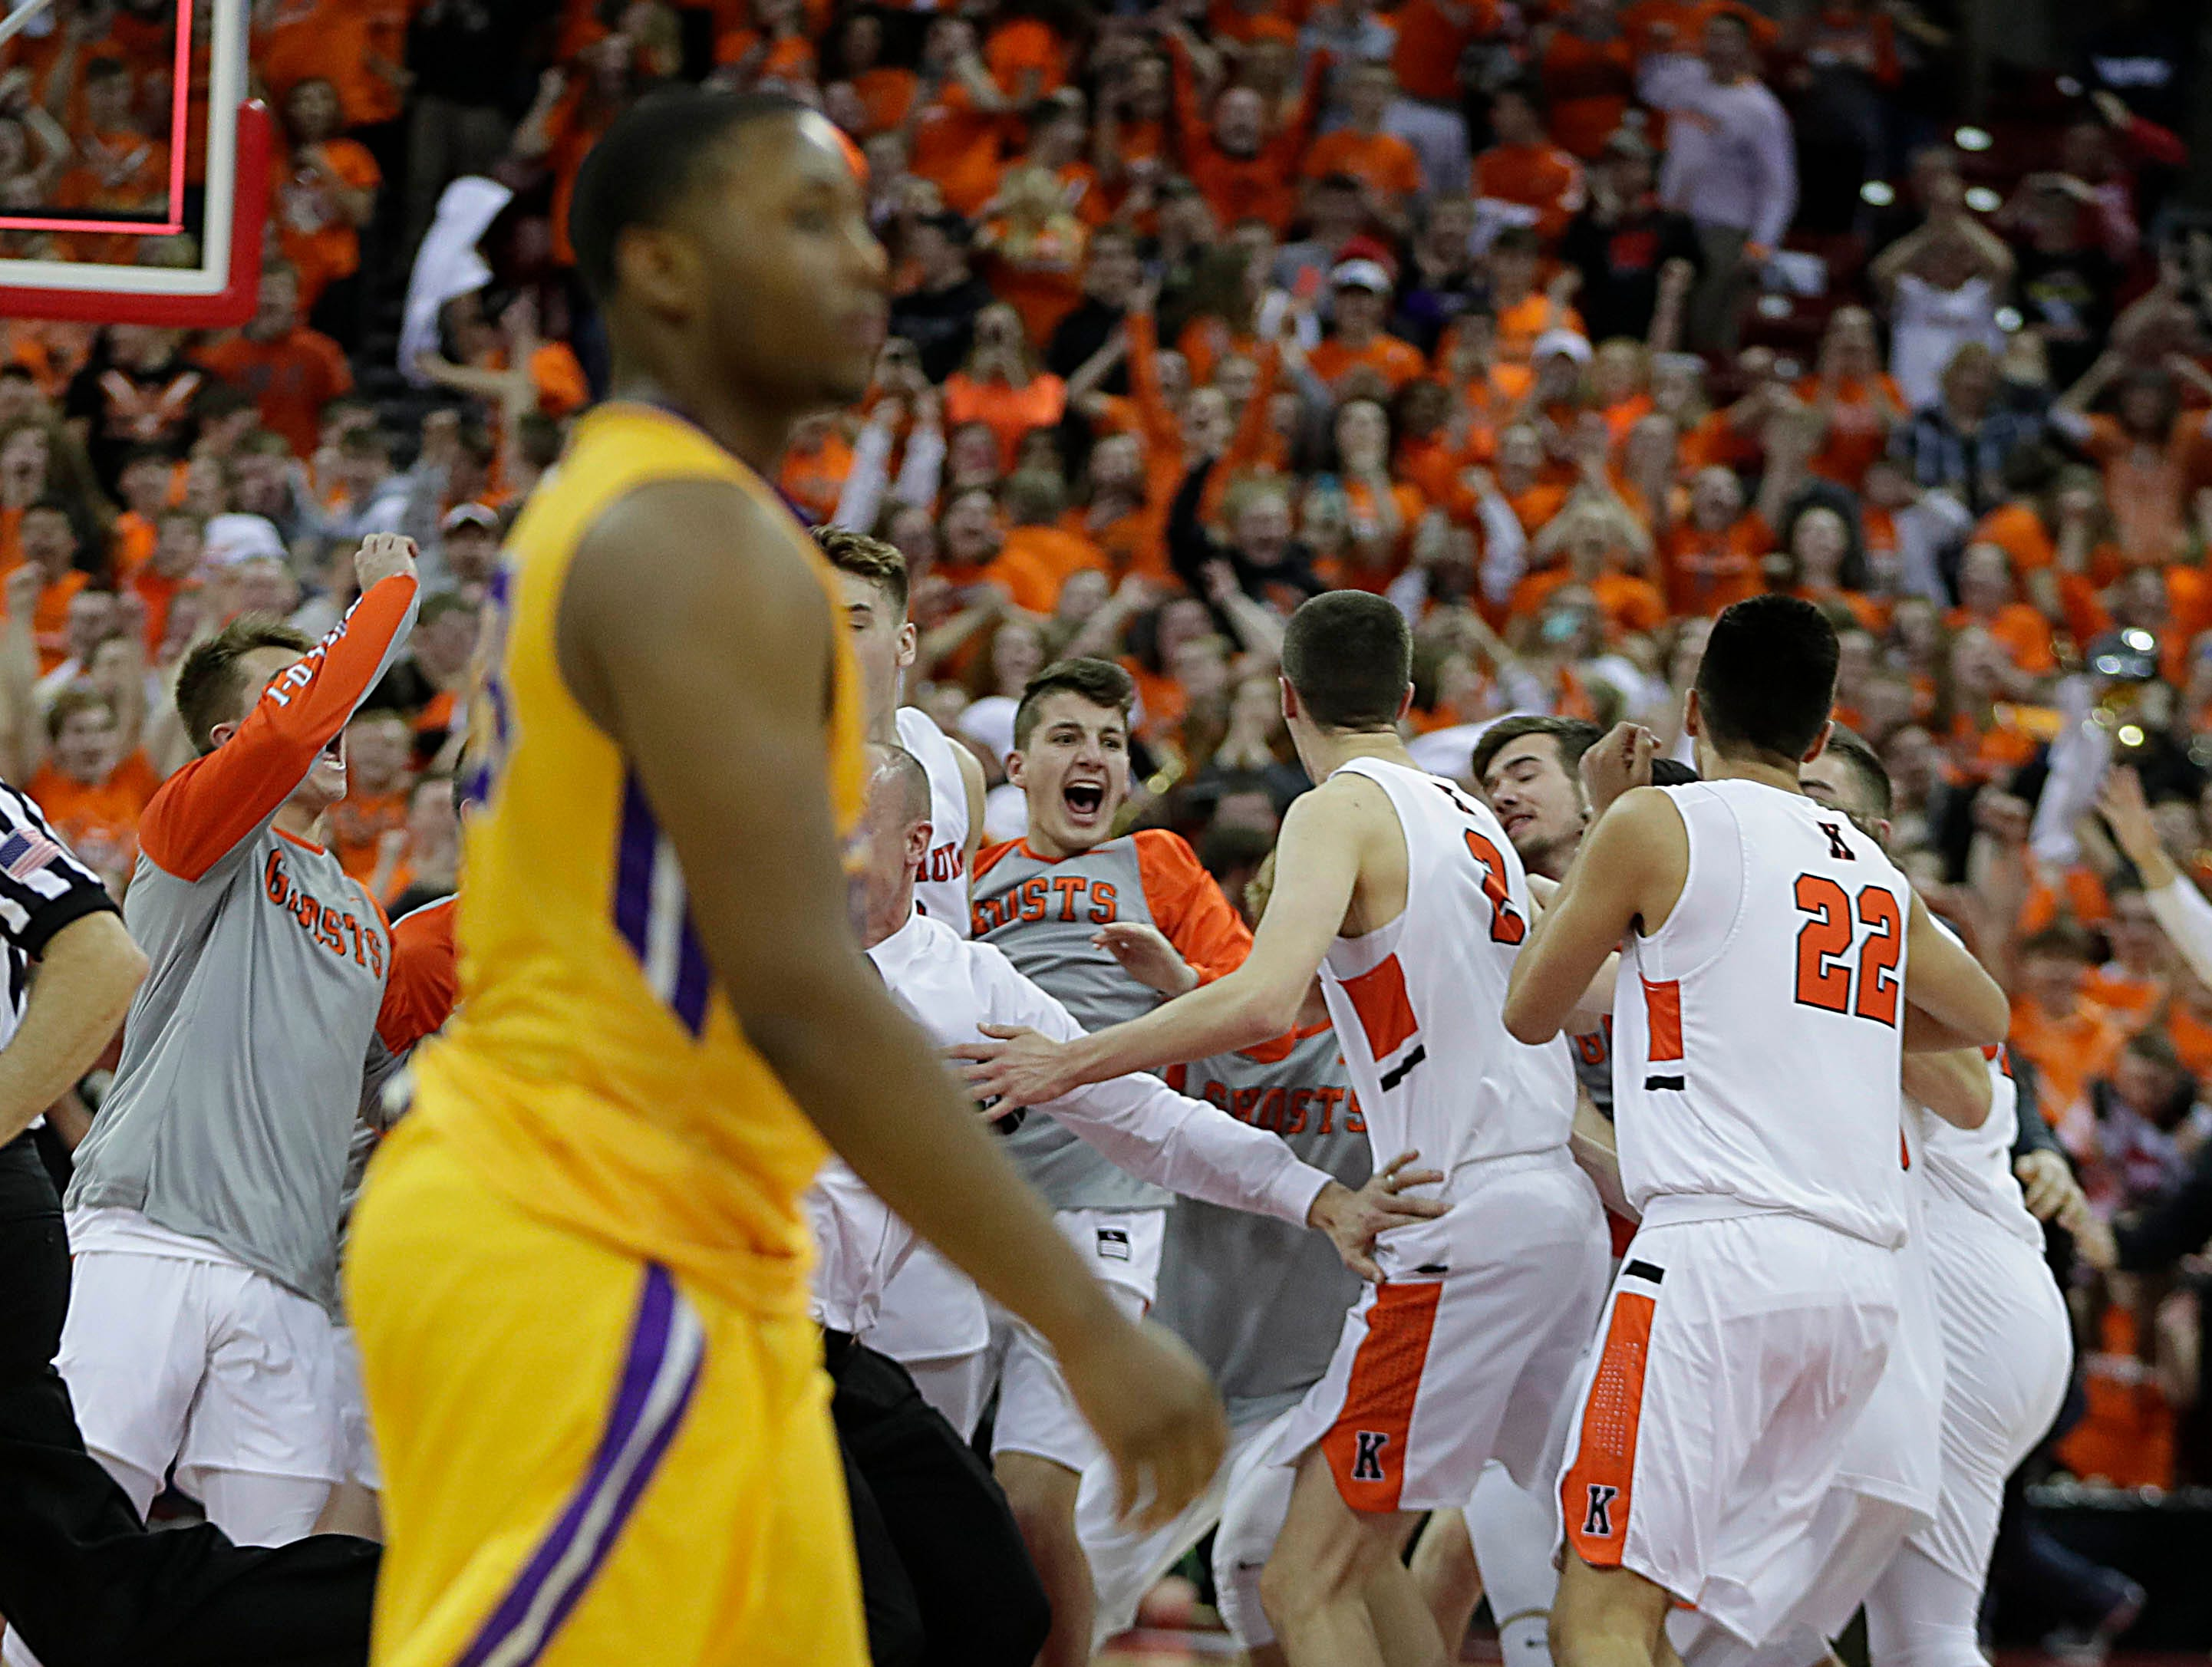 Washington players  show disappointment as Kaukauna reacts after  Kaukauna's 76-74 win over Washington in the 2018 Division 2 Championship at the WIAA state boys state basketball tournament.